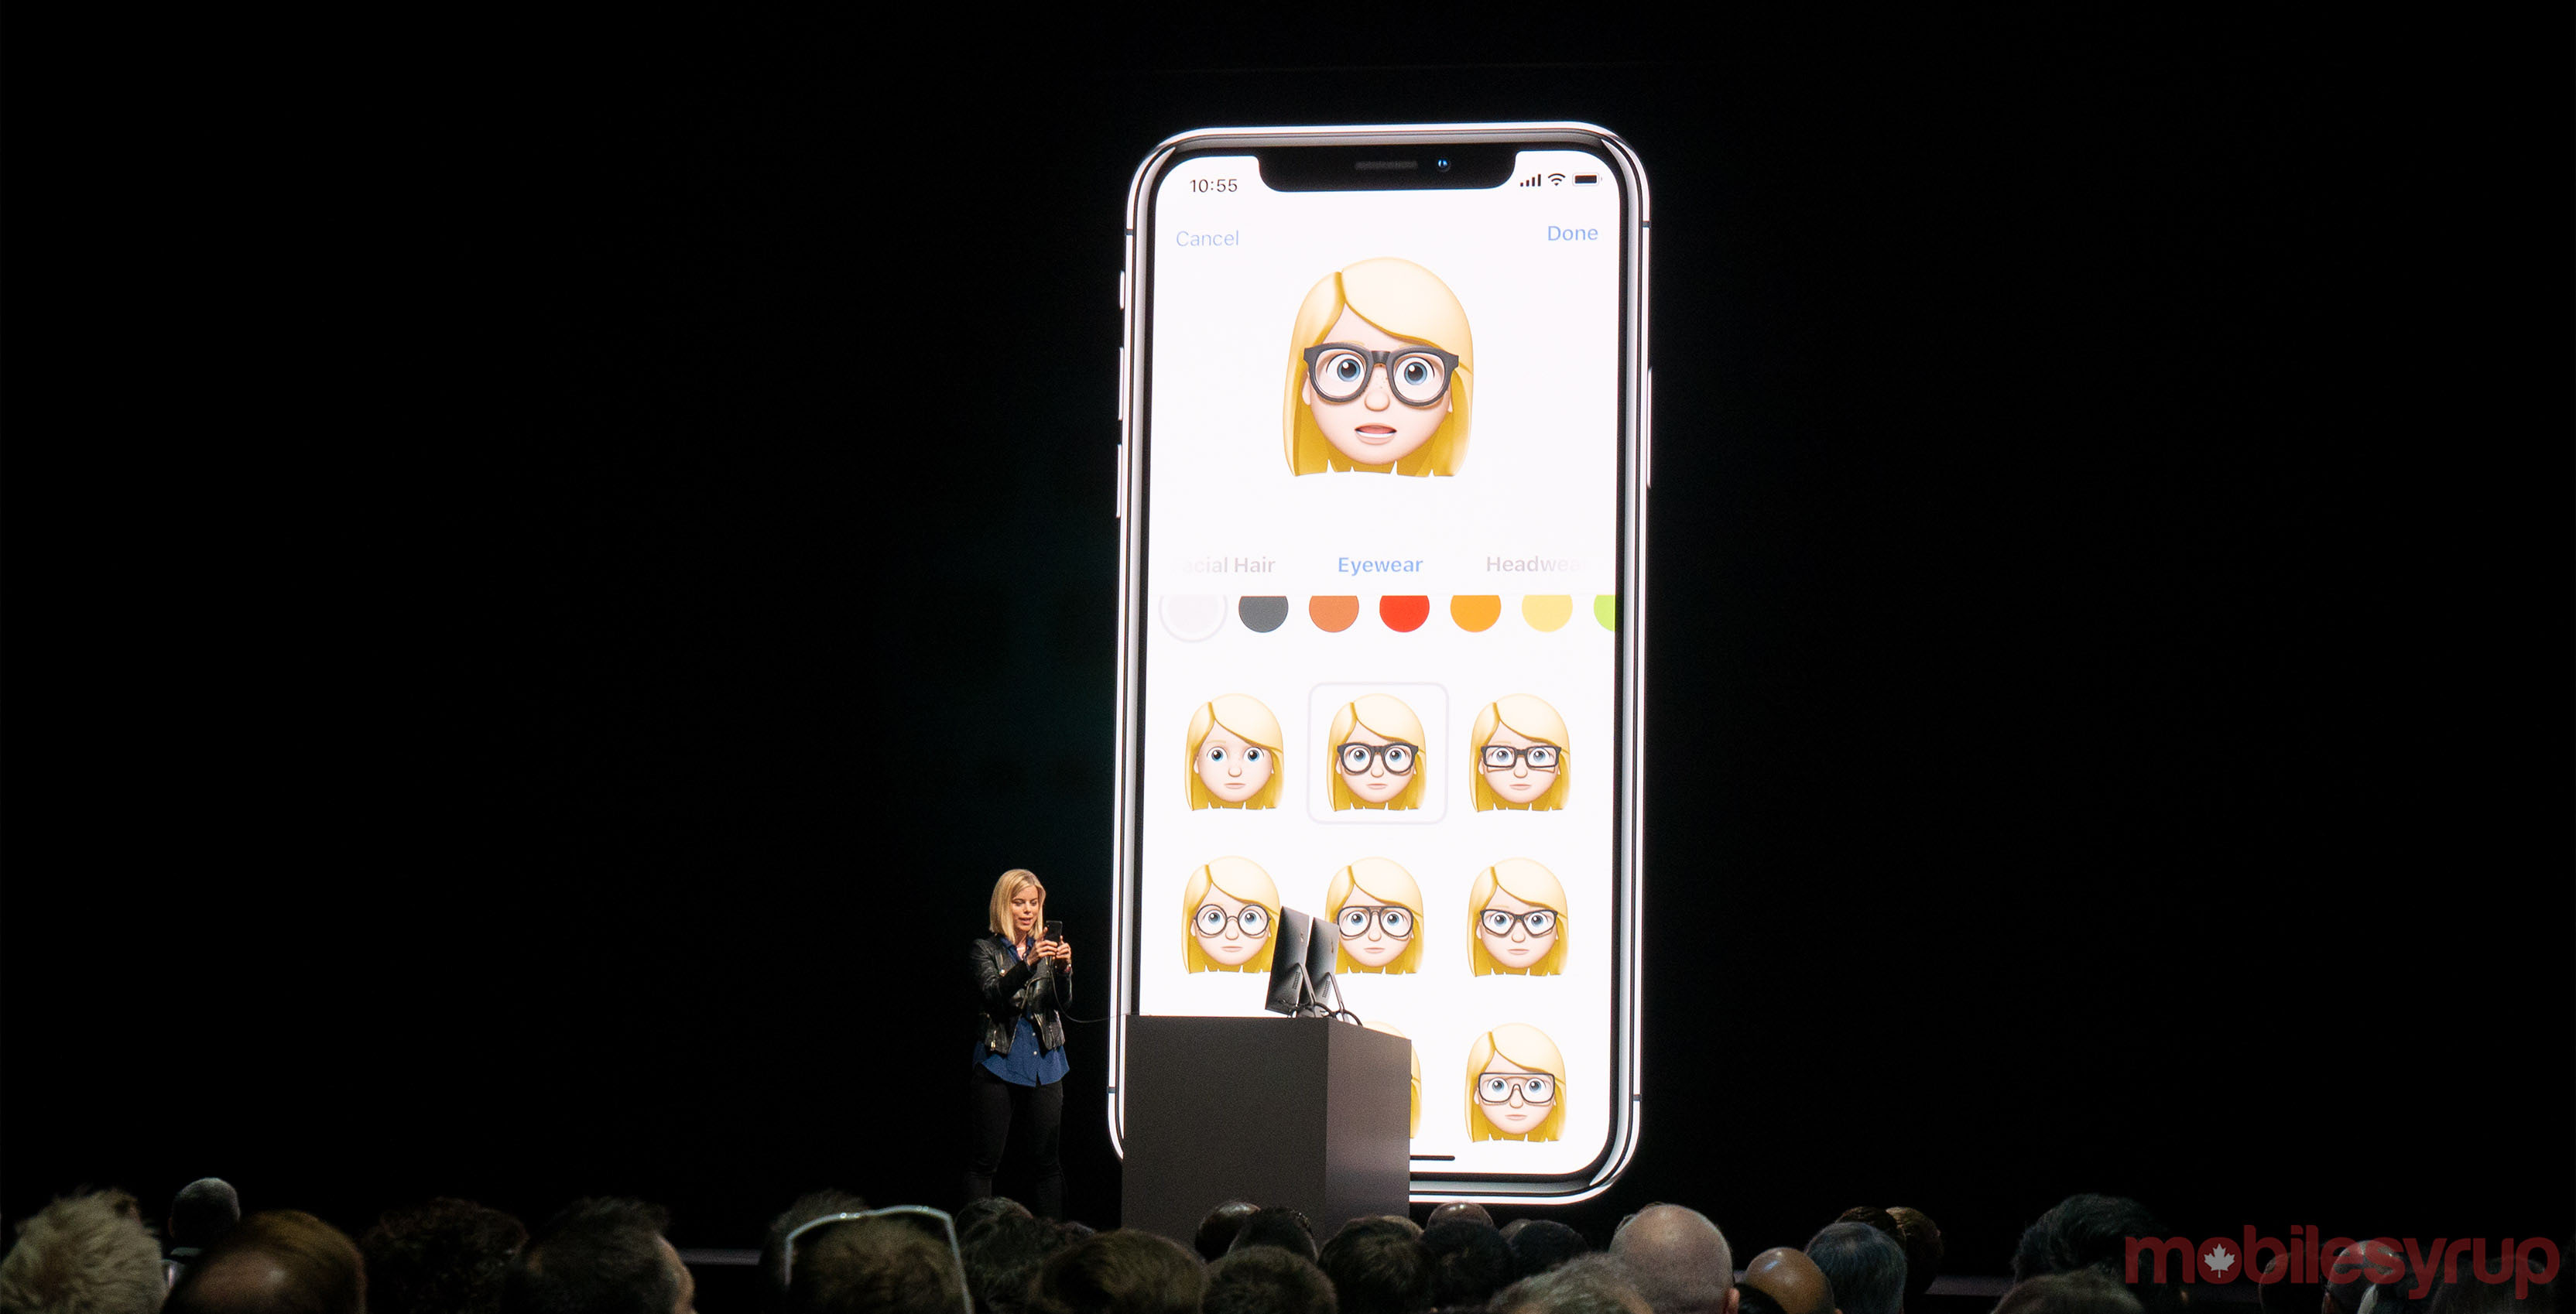 Apple's Memoji brings an animated you to your iPhone